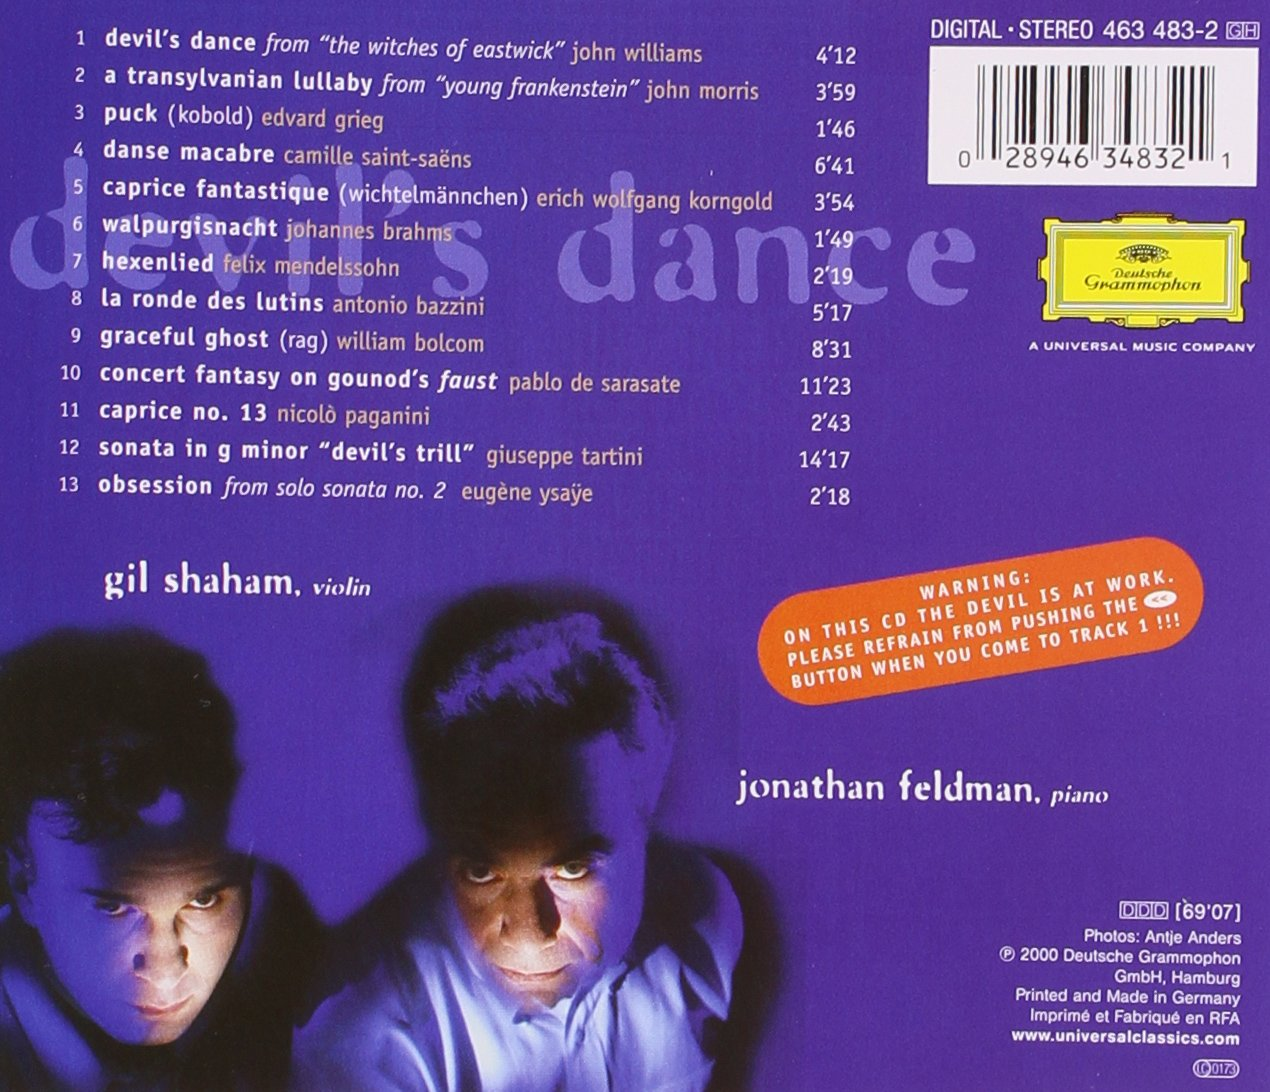 Gil Shaham & Jonathan Feldman - The Devil's Dance by Deutsche Grammophon